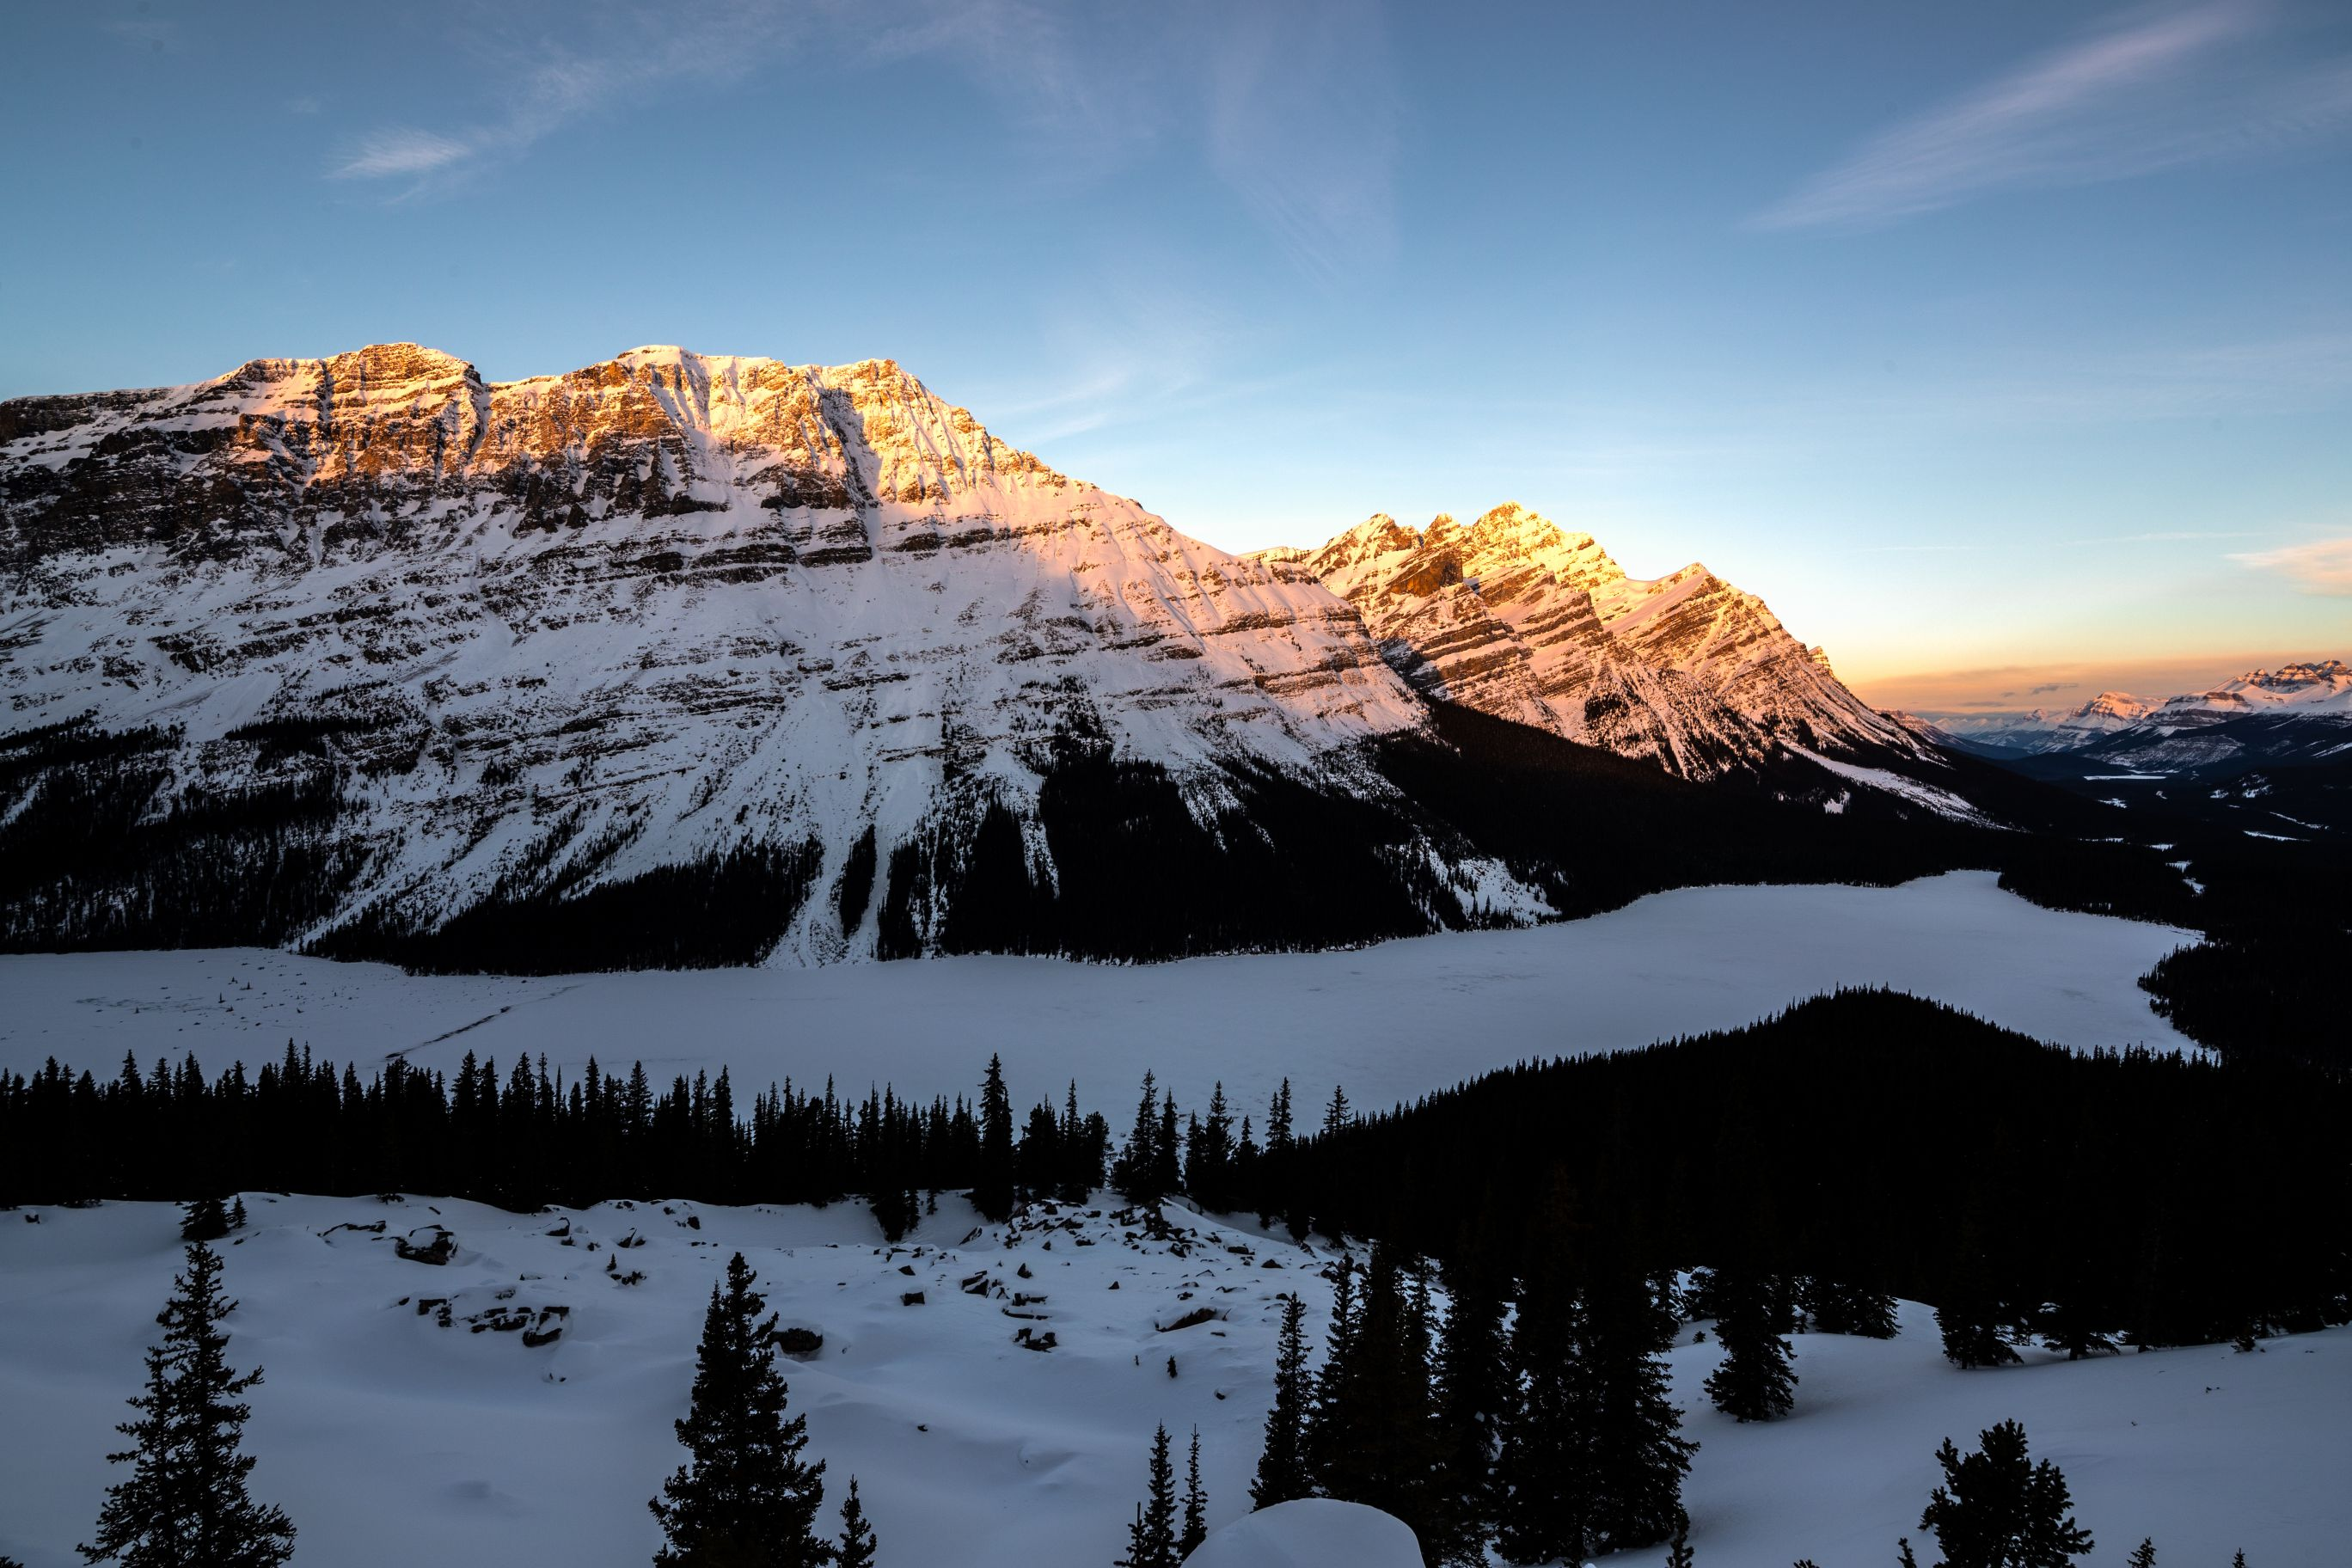 Sunset over frozen lake in the Canadian Rockies.